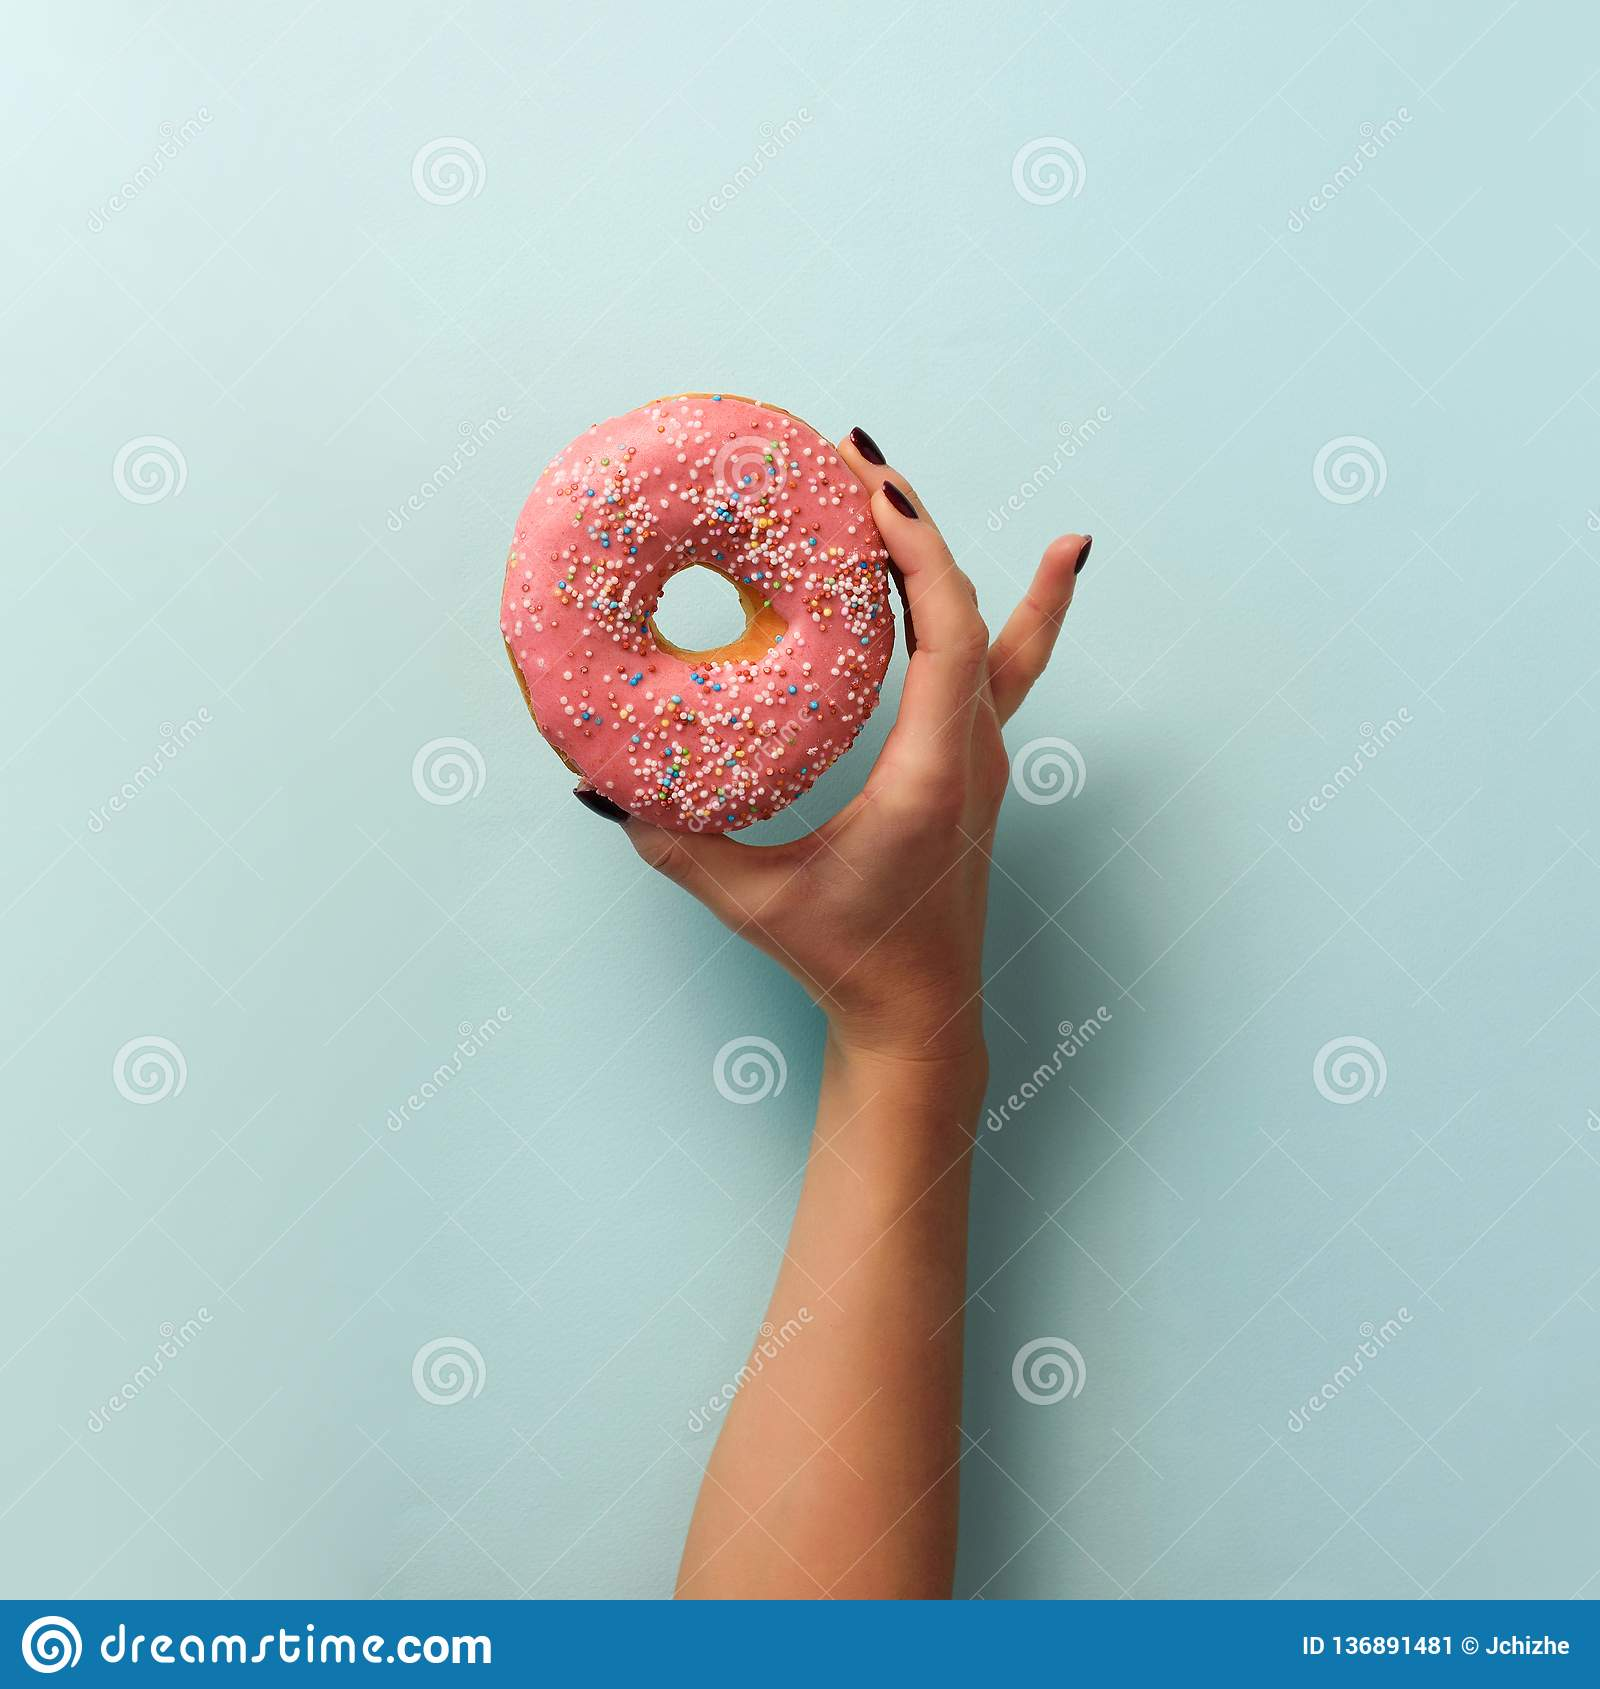 Female hand holding sweet donut over blue background. Top view, flat lay. Square crop. Weight lost, sport, fitness, diet concept.